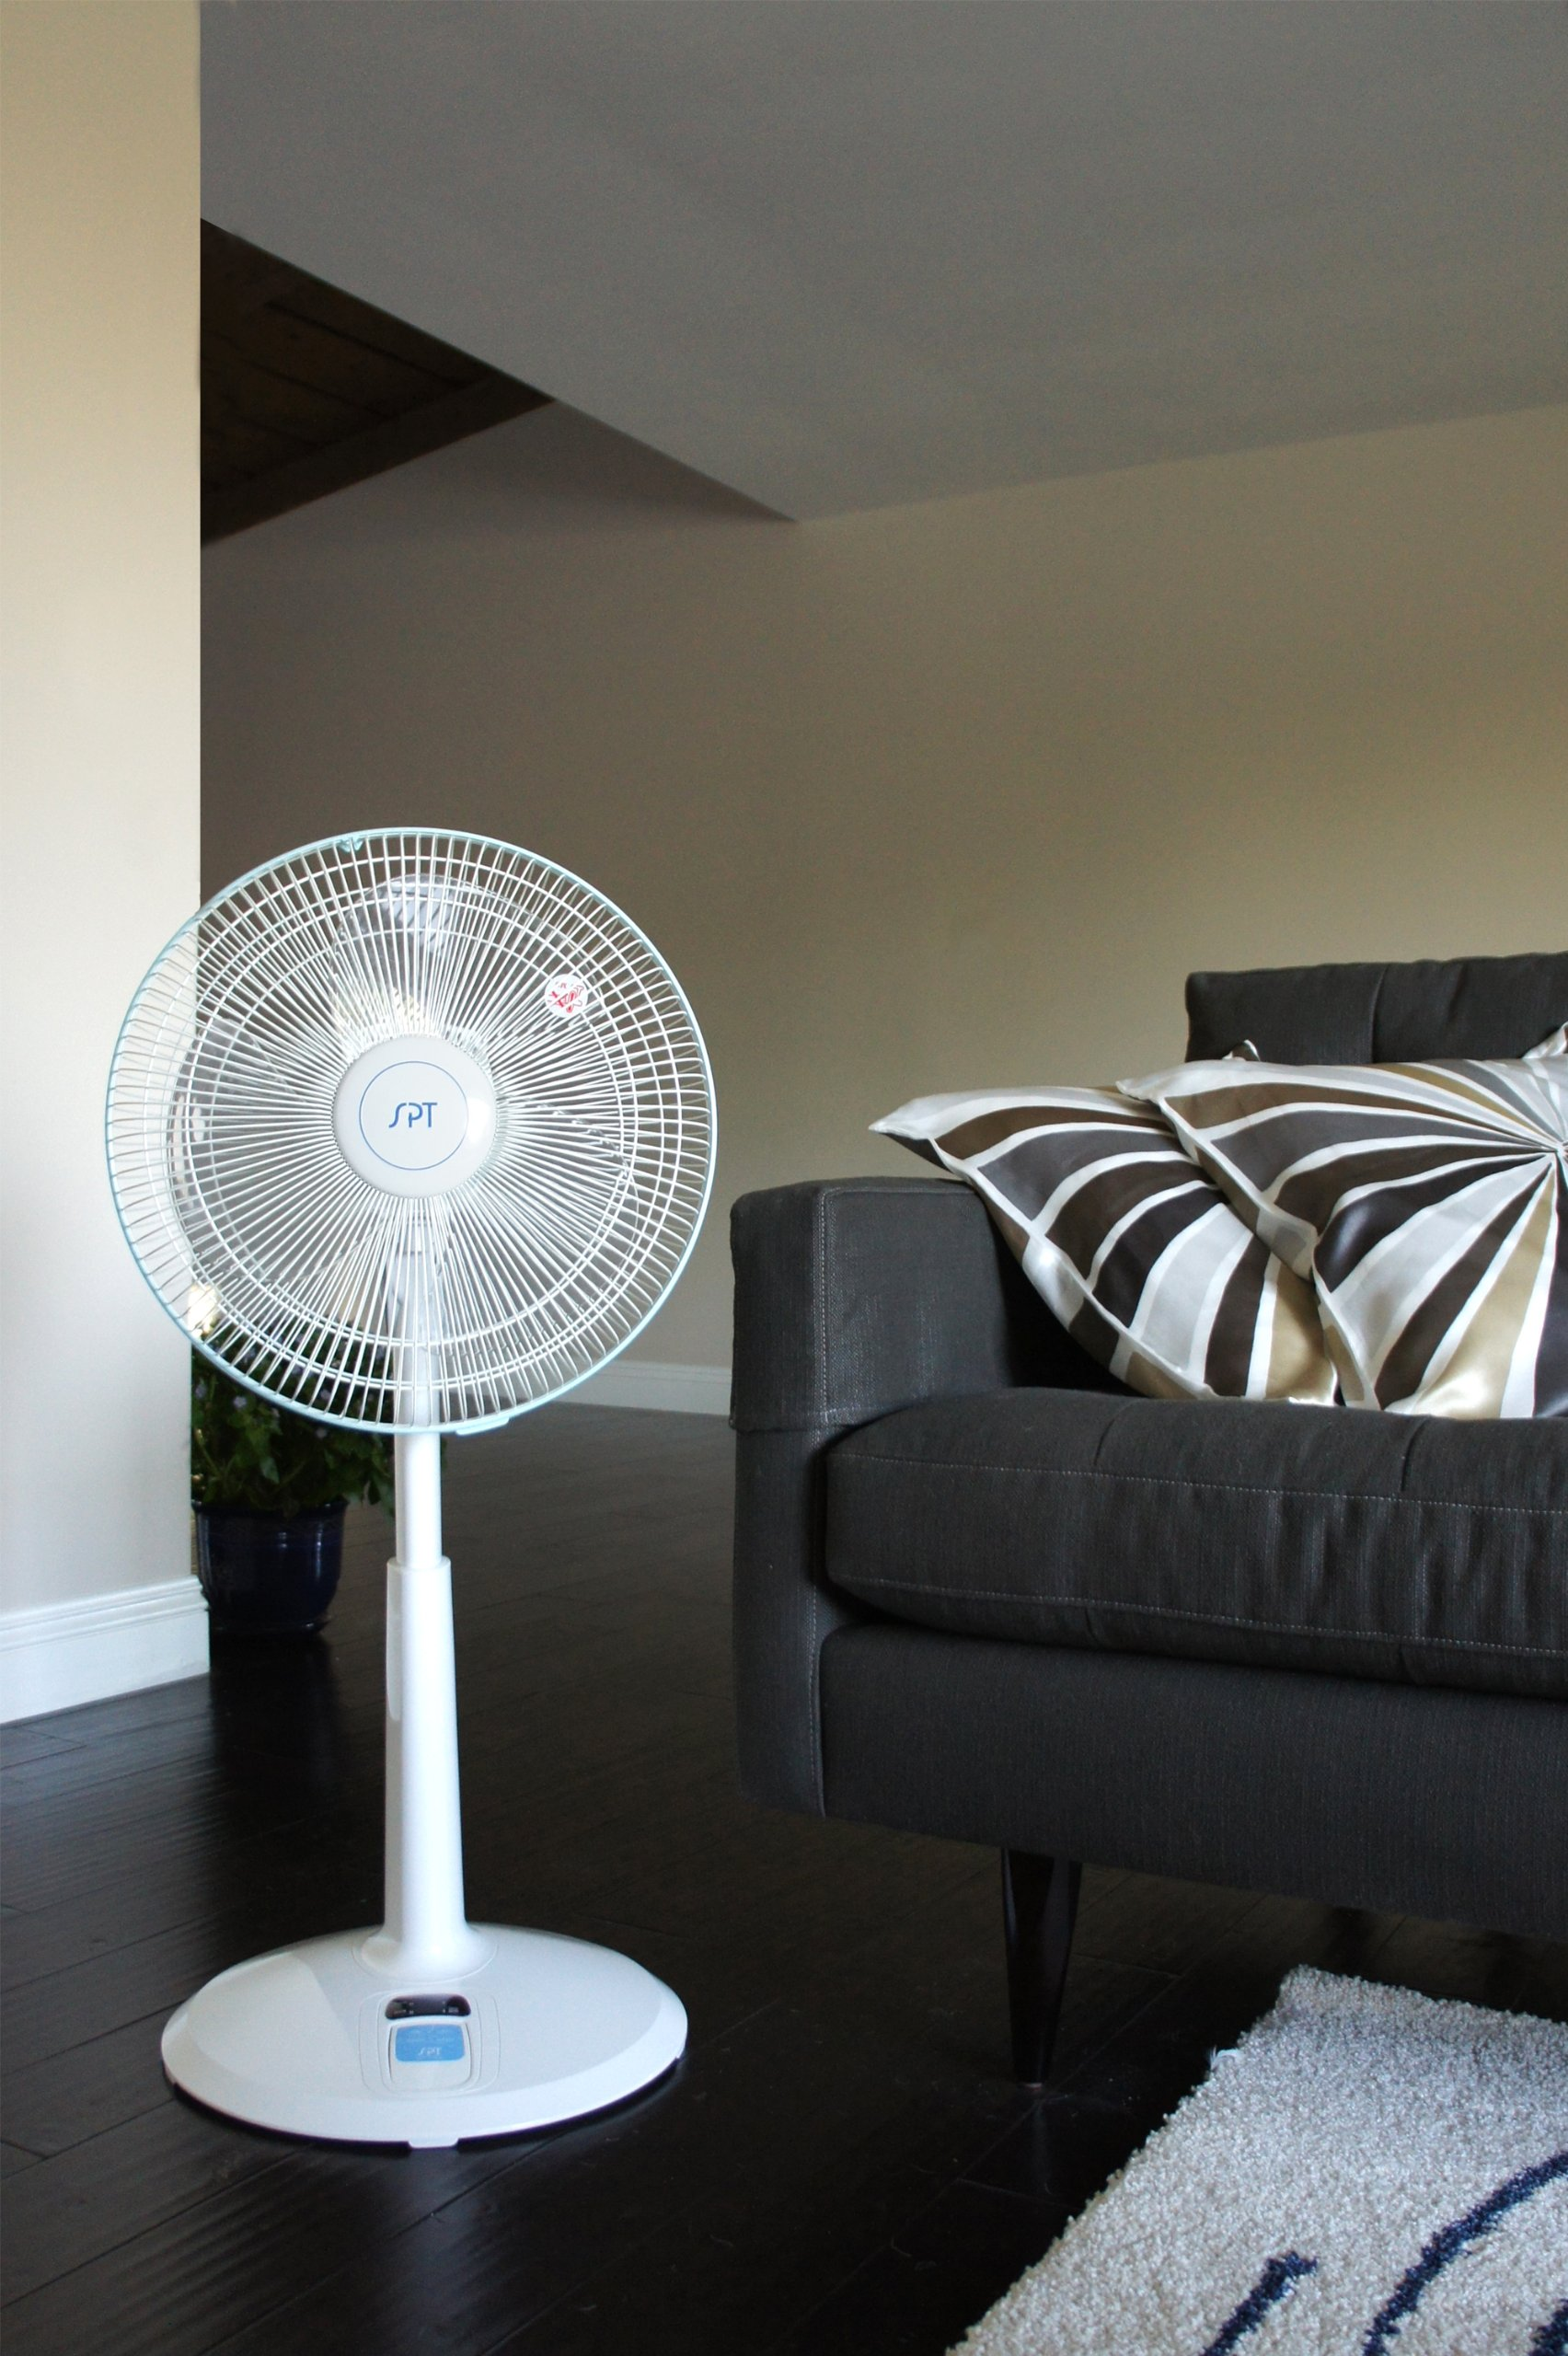 Sunpentown SF-1468 3-Speed Oscillating 14-Inch Standing Fan with Remote Control by Sunpentown (Image #2)